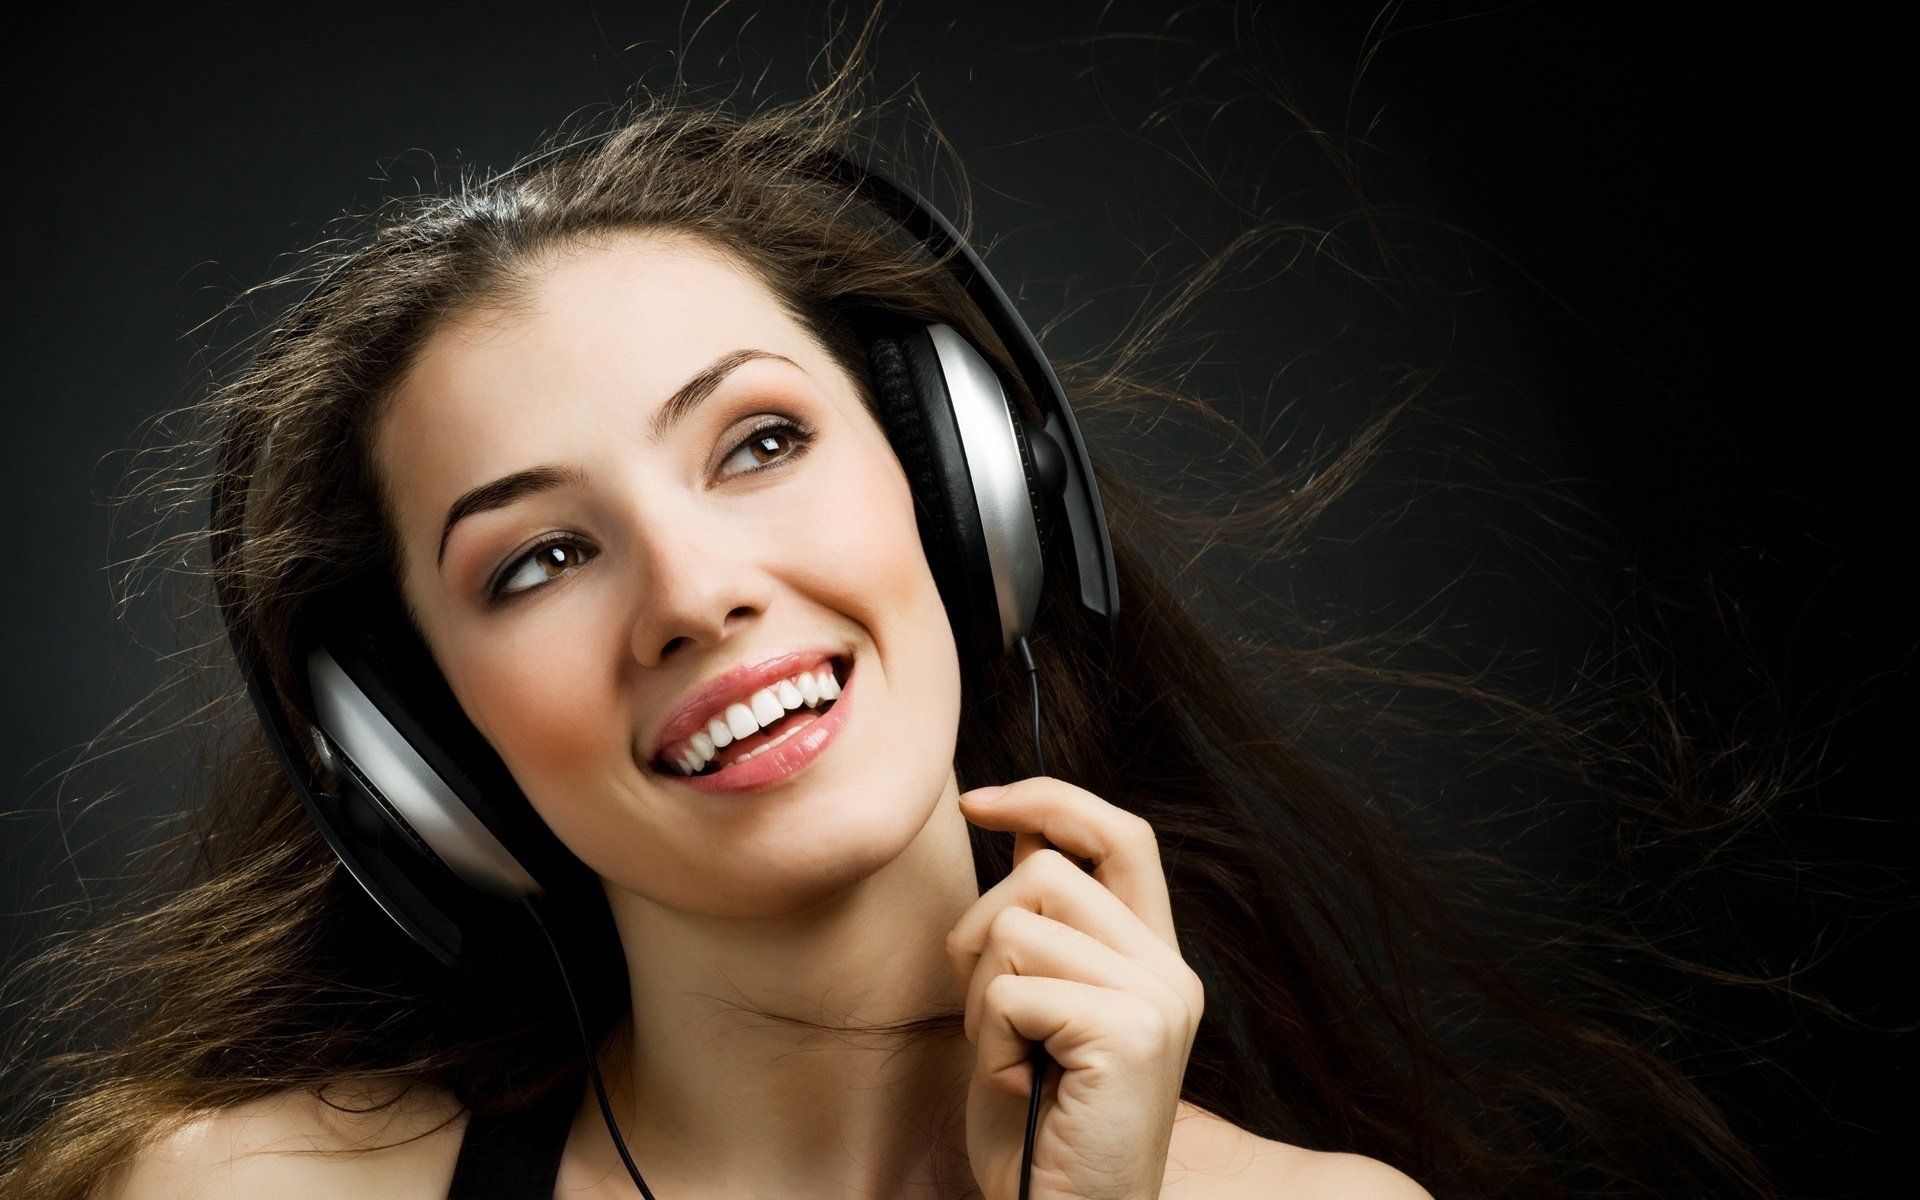 Chica con audifonos - 1920x1200